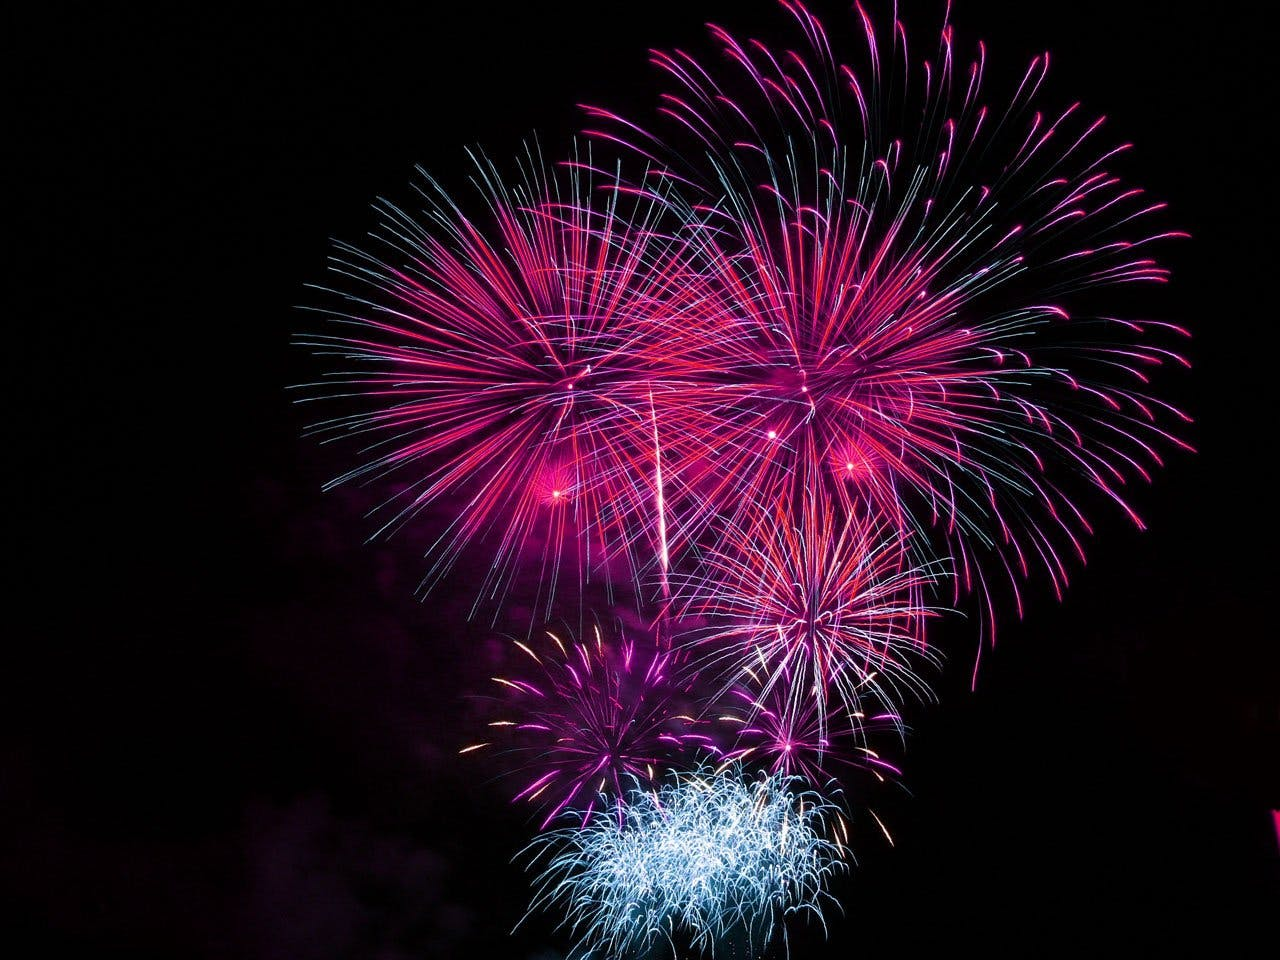 Pink and Blue Fireworks Display during Night Time